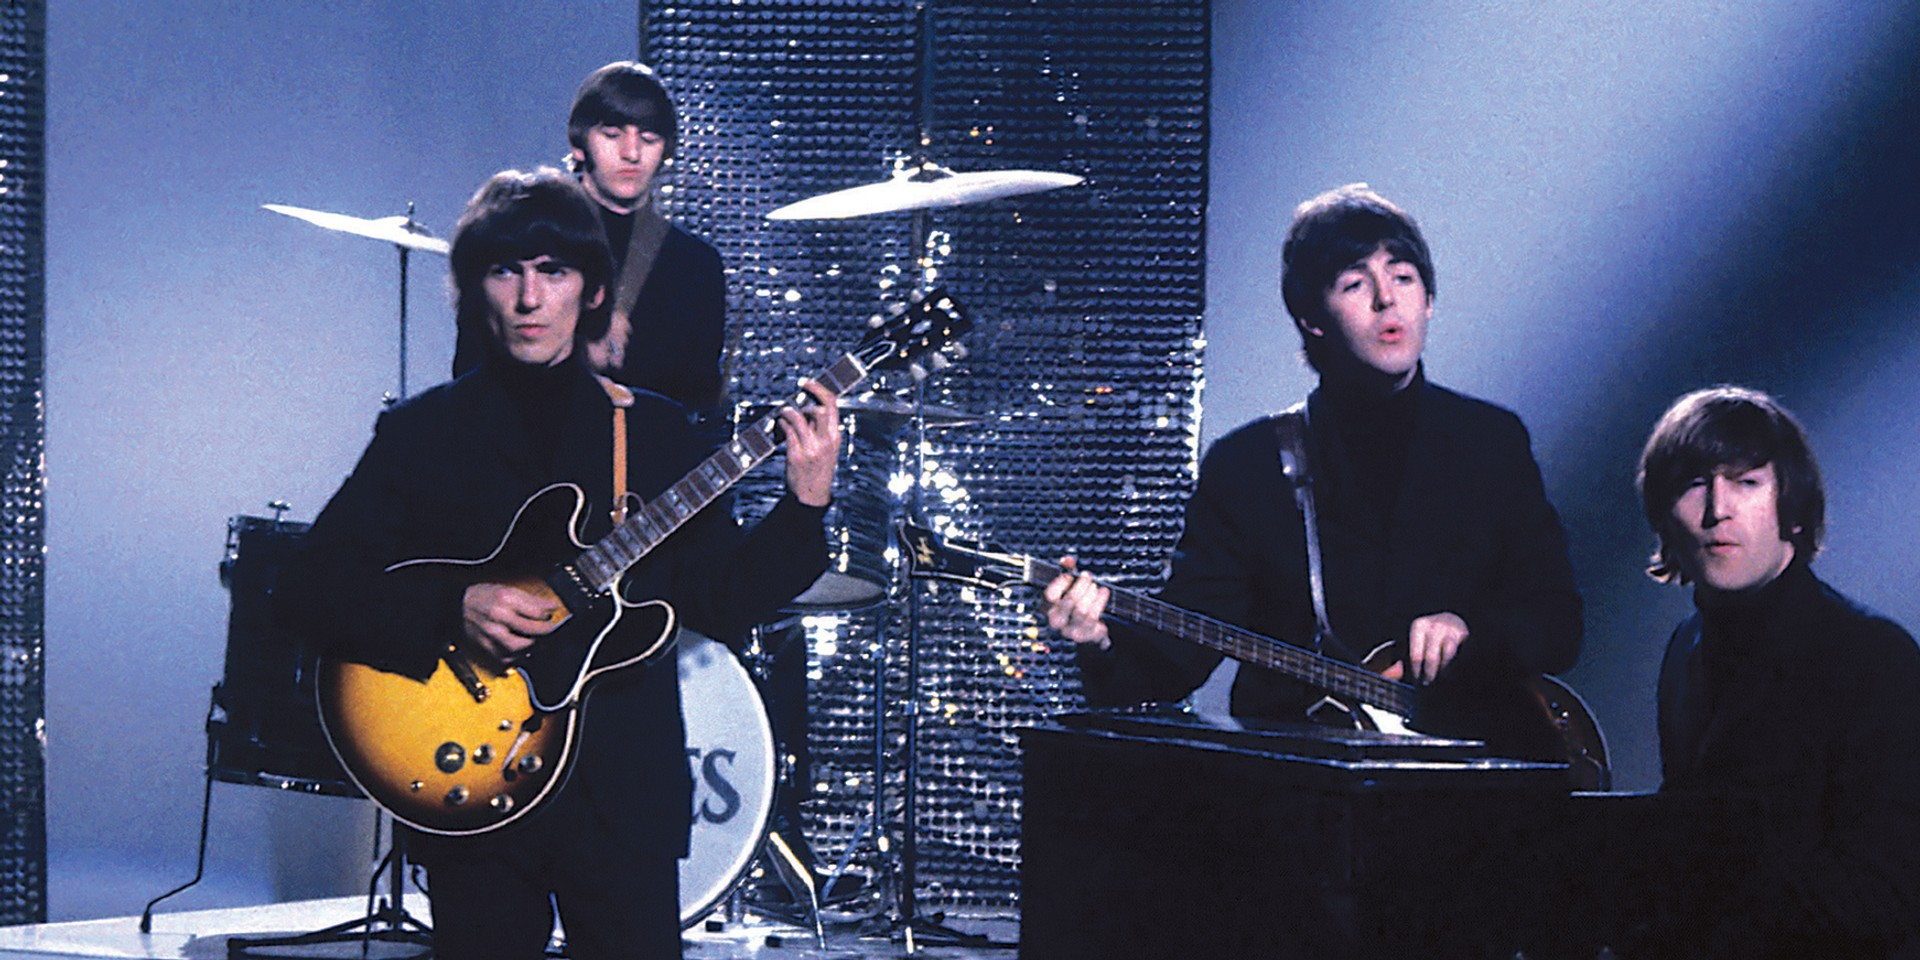 Watch The Beatles Resurrected in Glorious HD